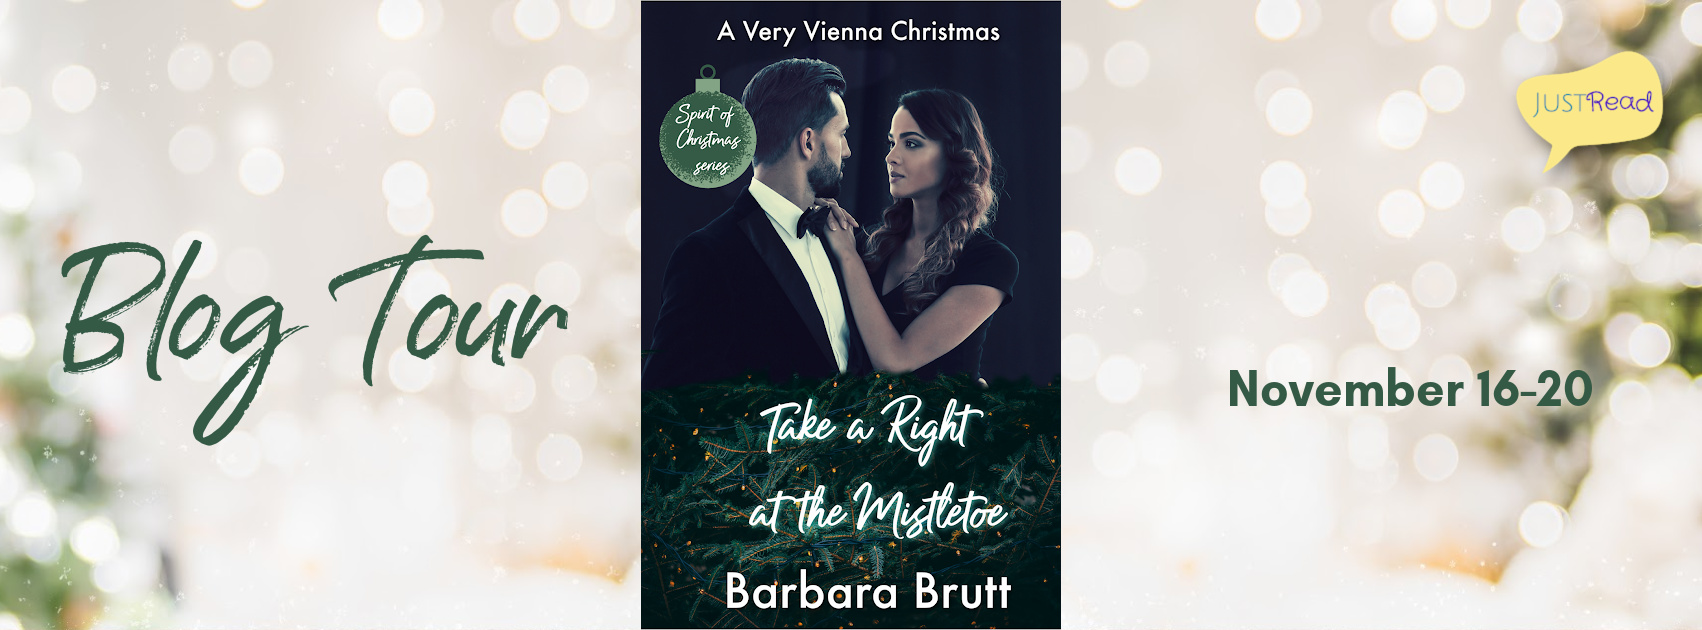 Welcome to the Take a Right at the Mistletoe Blog Tour & Giveaway!